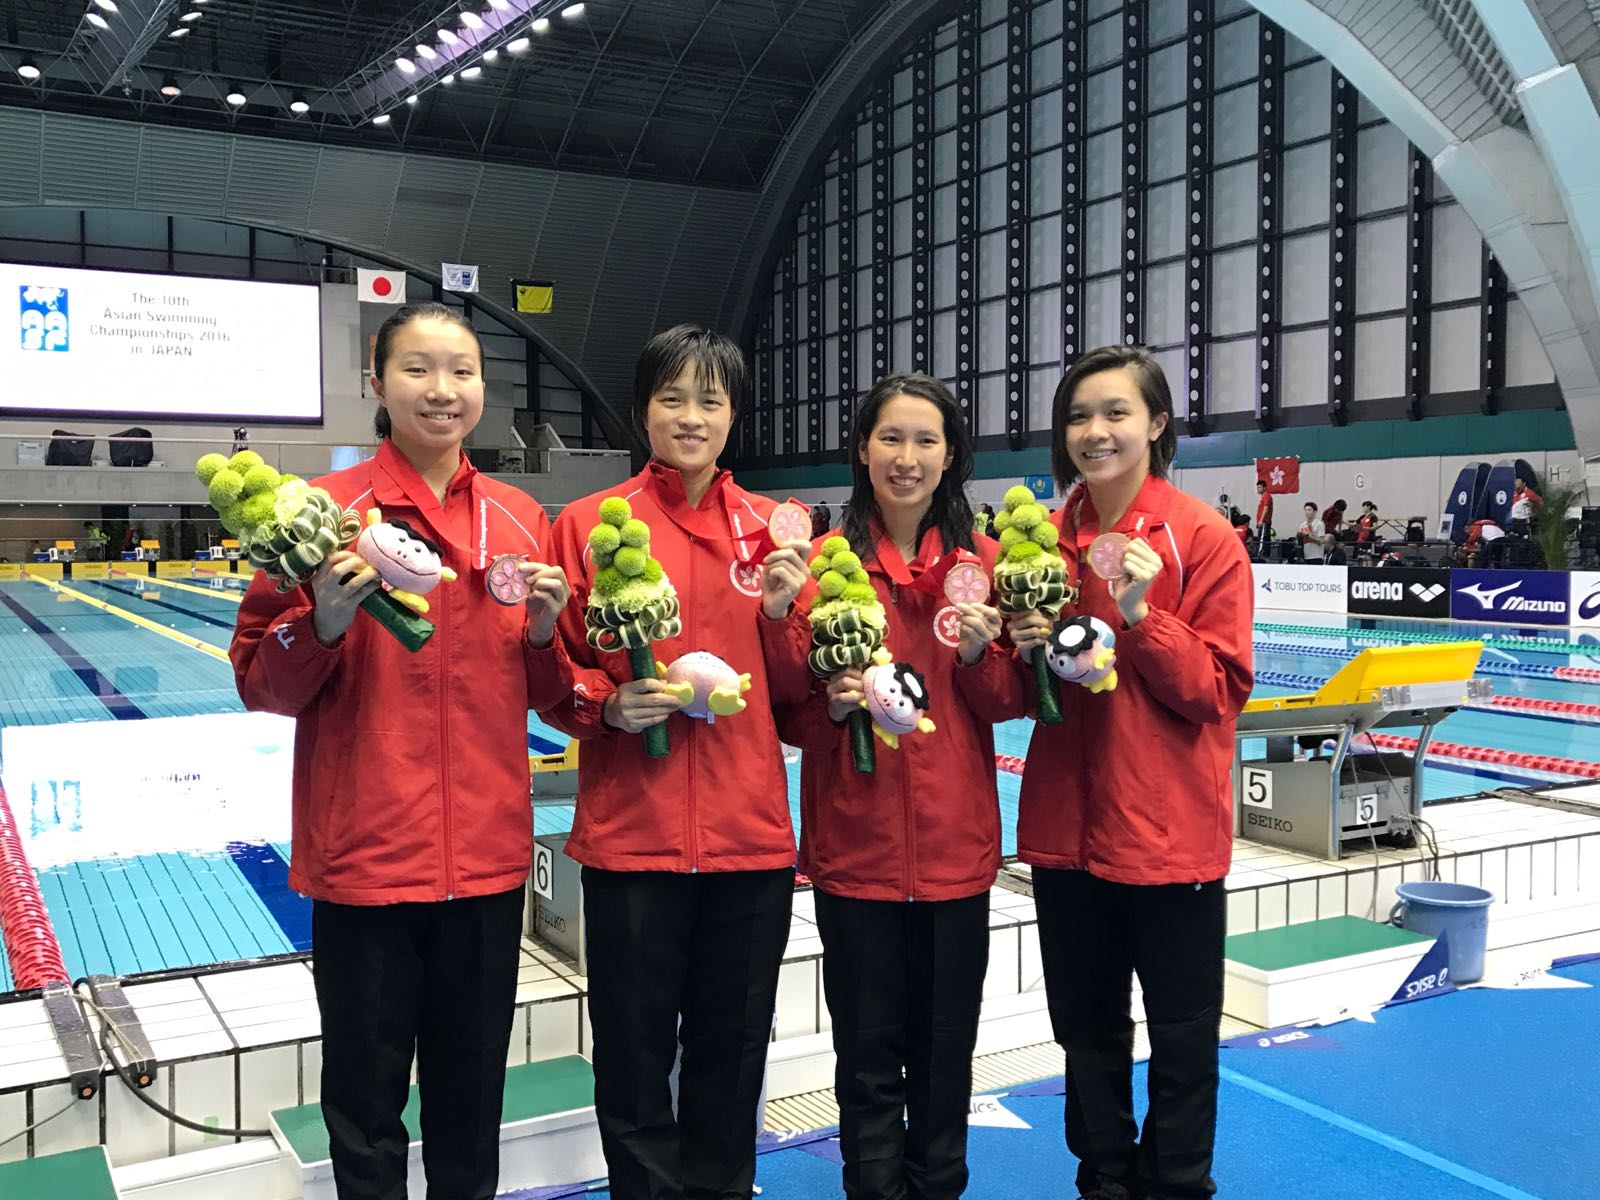 Win Tin Swimming Club - 10th Asian Swimming Championship 1